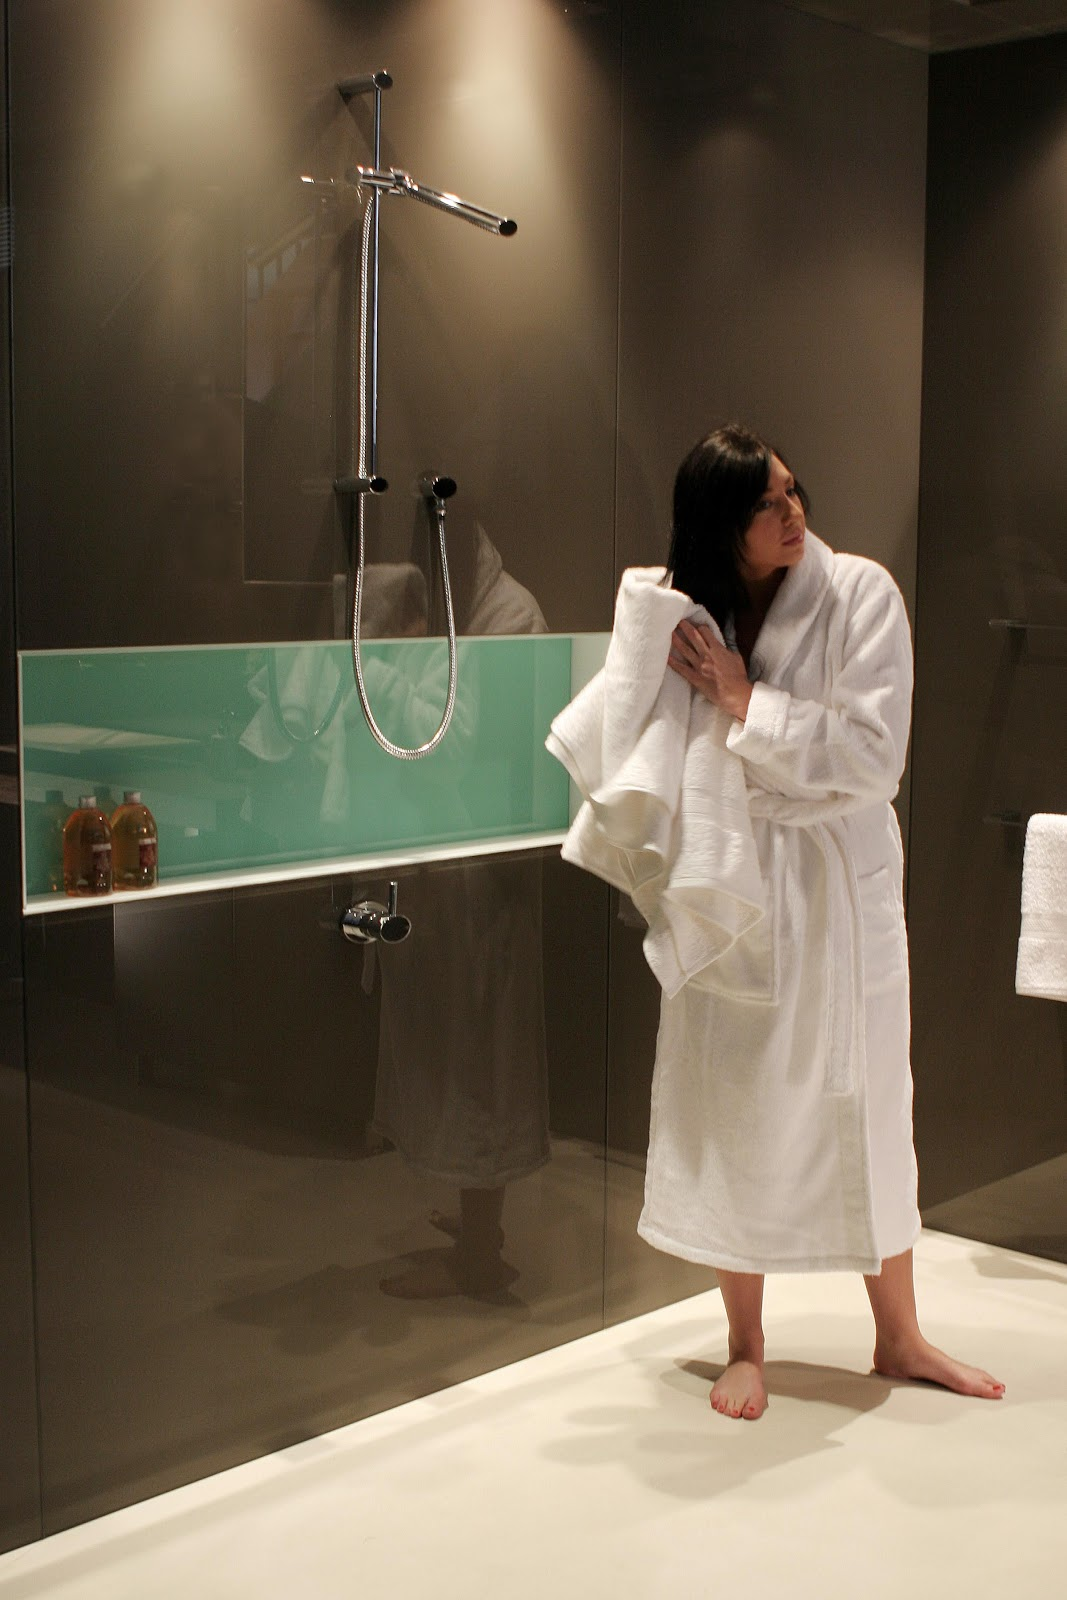 Minosa A Real Showstopper Modern Bathroom: Minosa: Minosa Collaborates With Deco Glaze To Complete